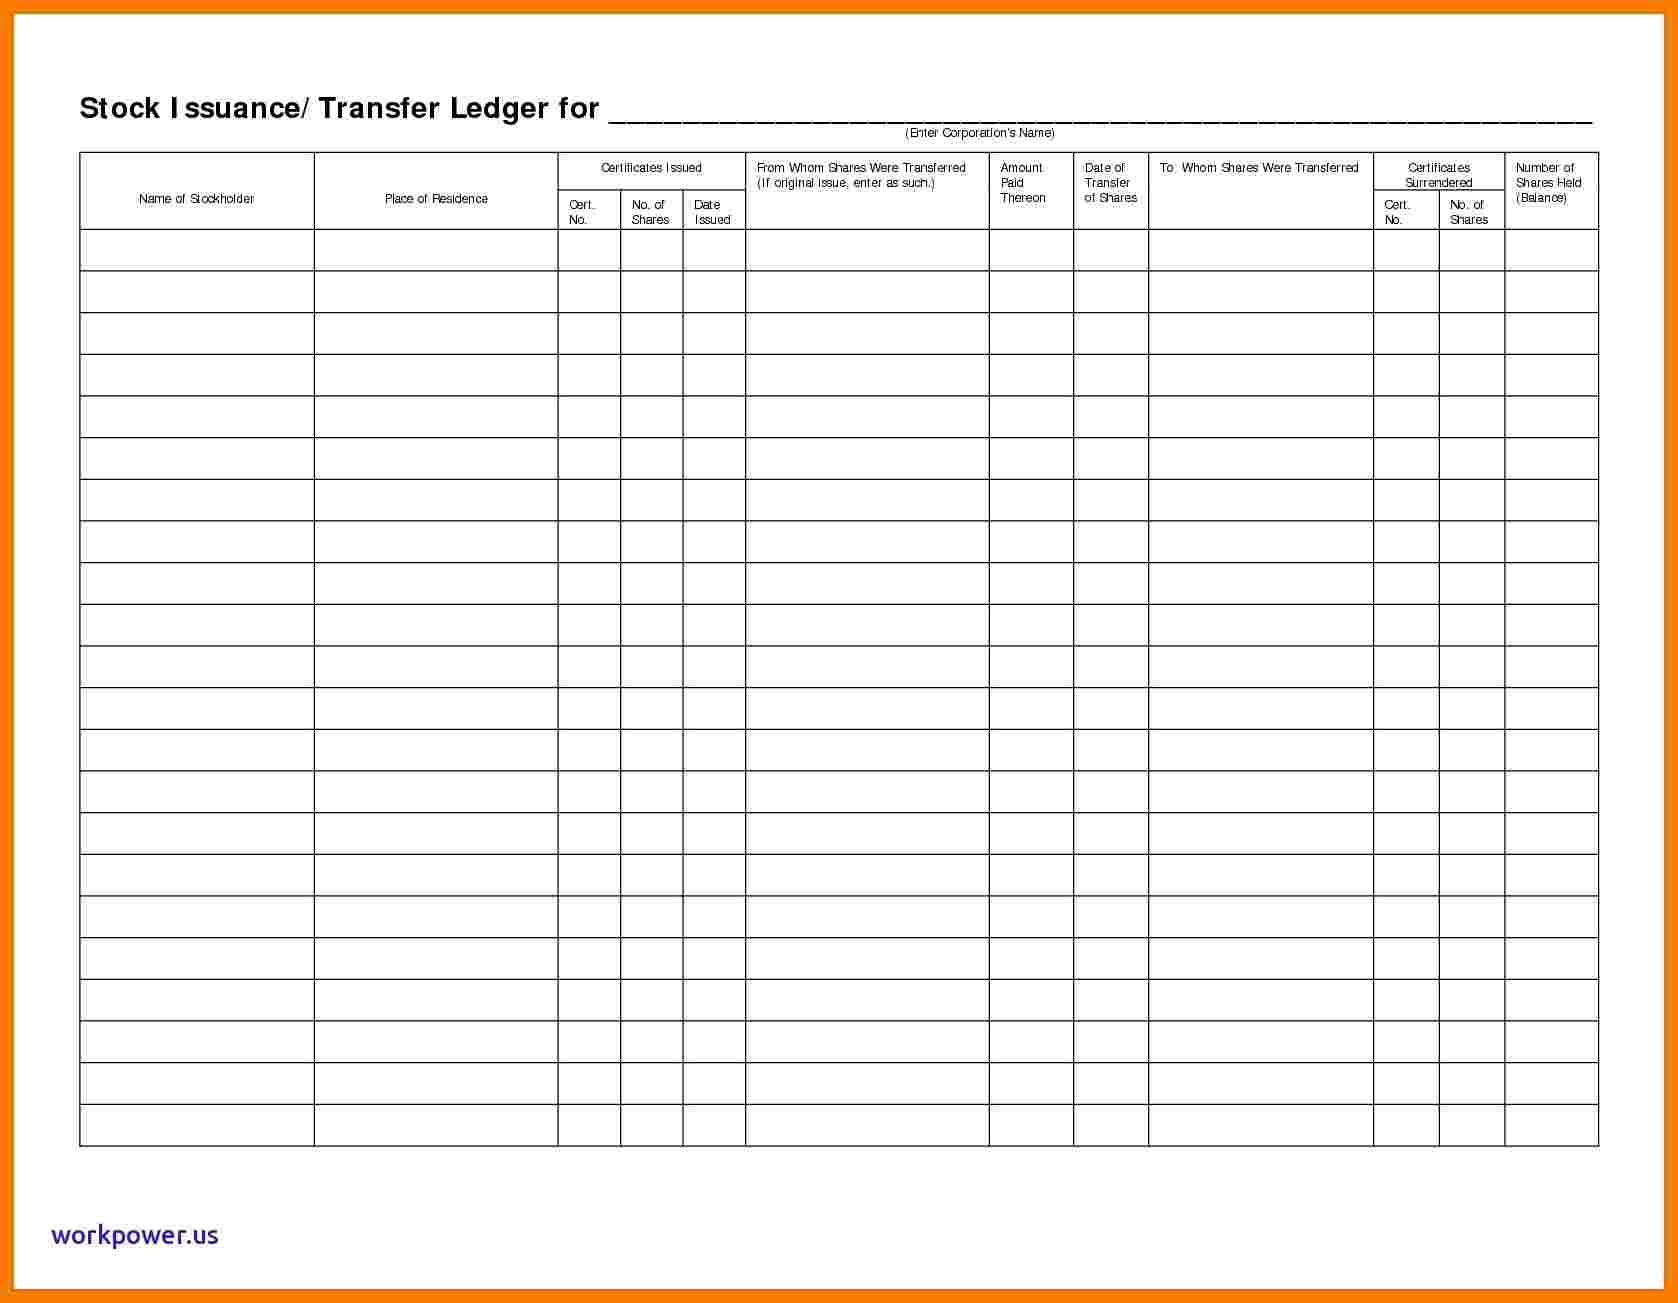 Stock Ledger Excel Ledger Review